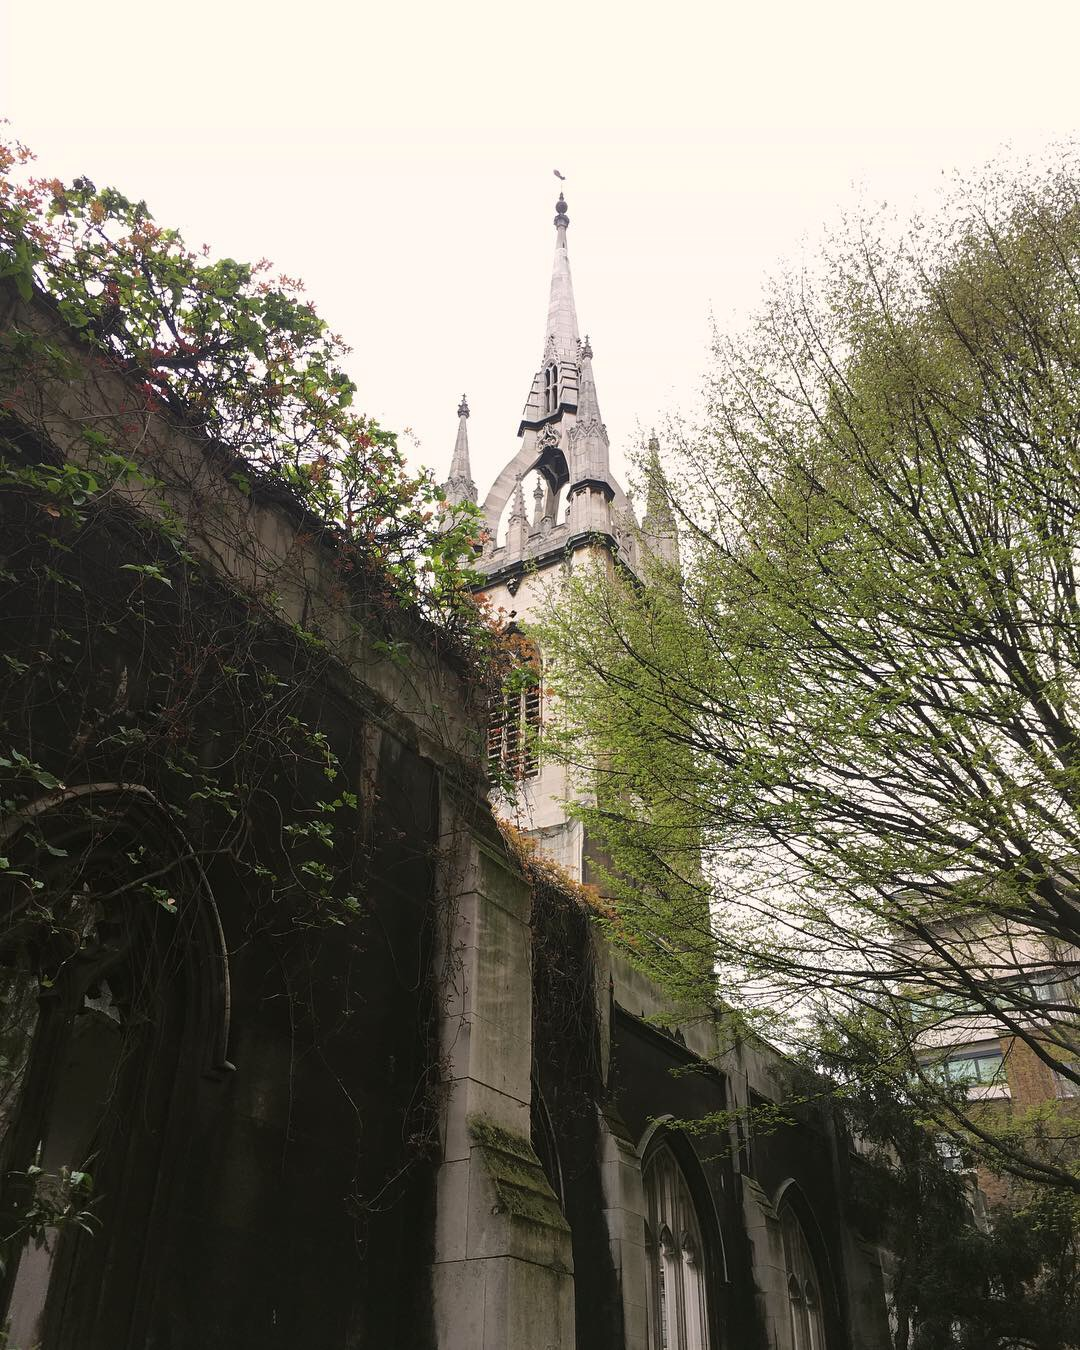 view of gothic spire of a ruined church with trees in foreground